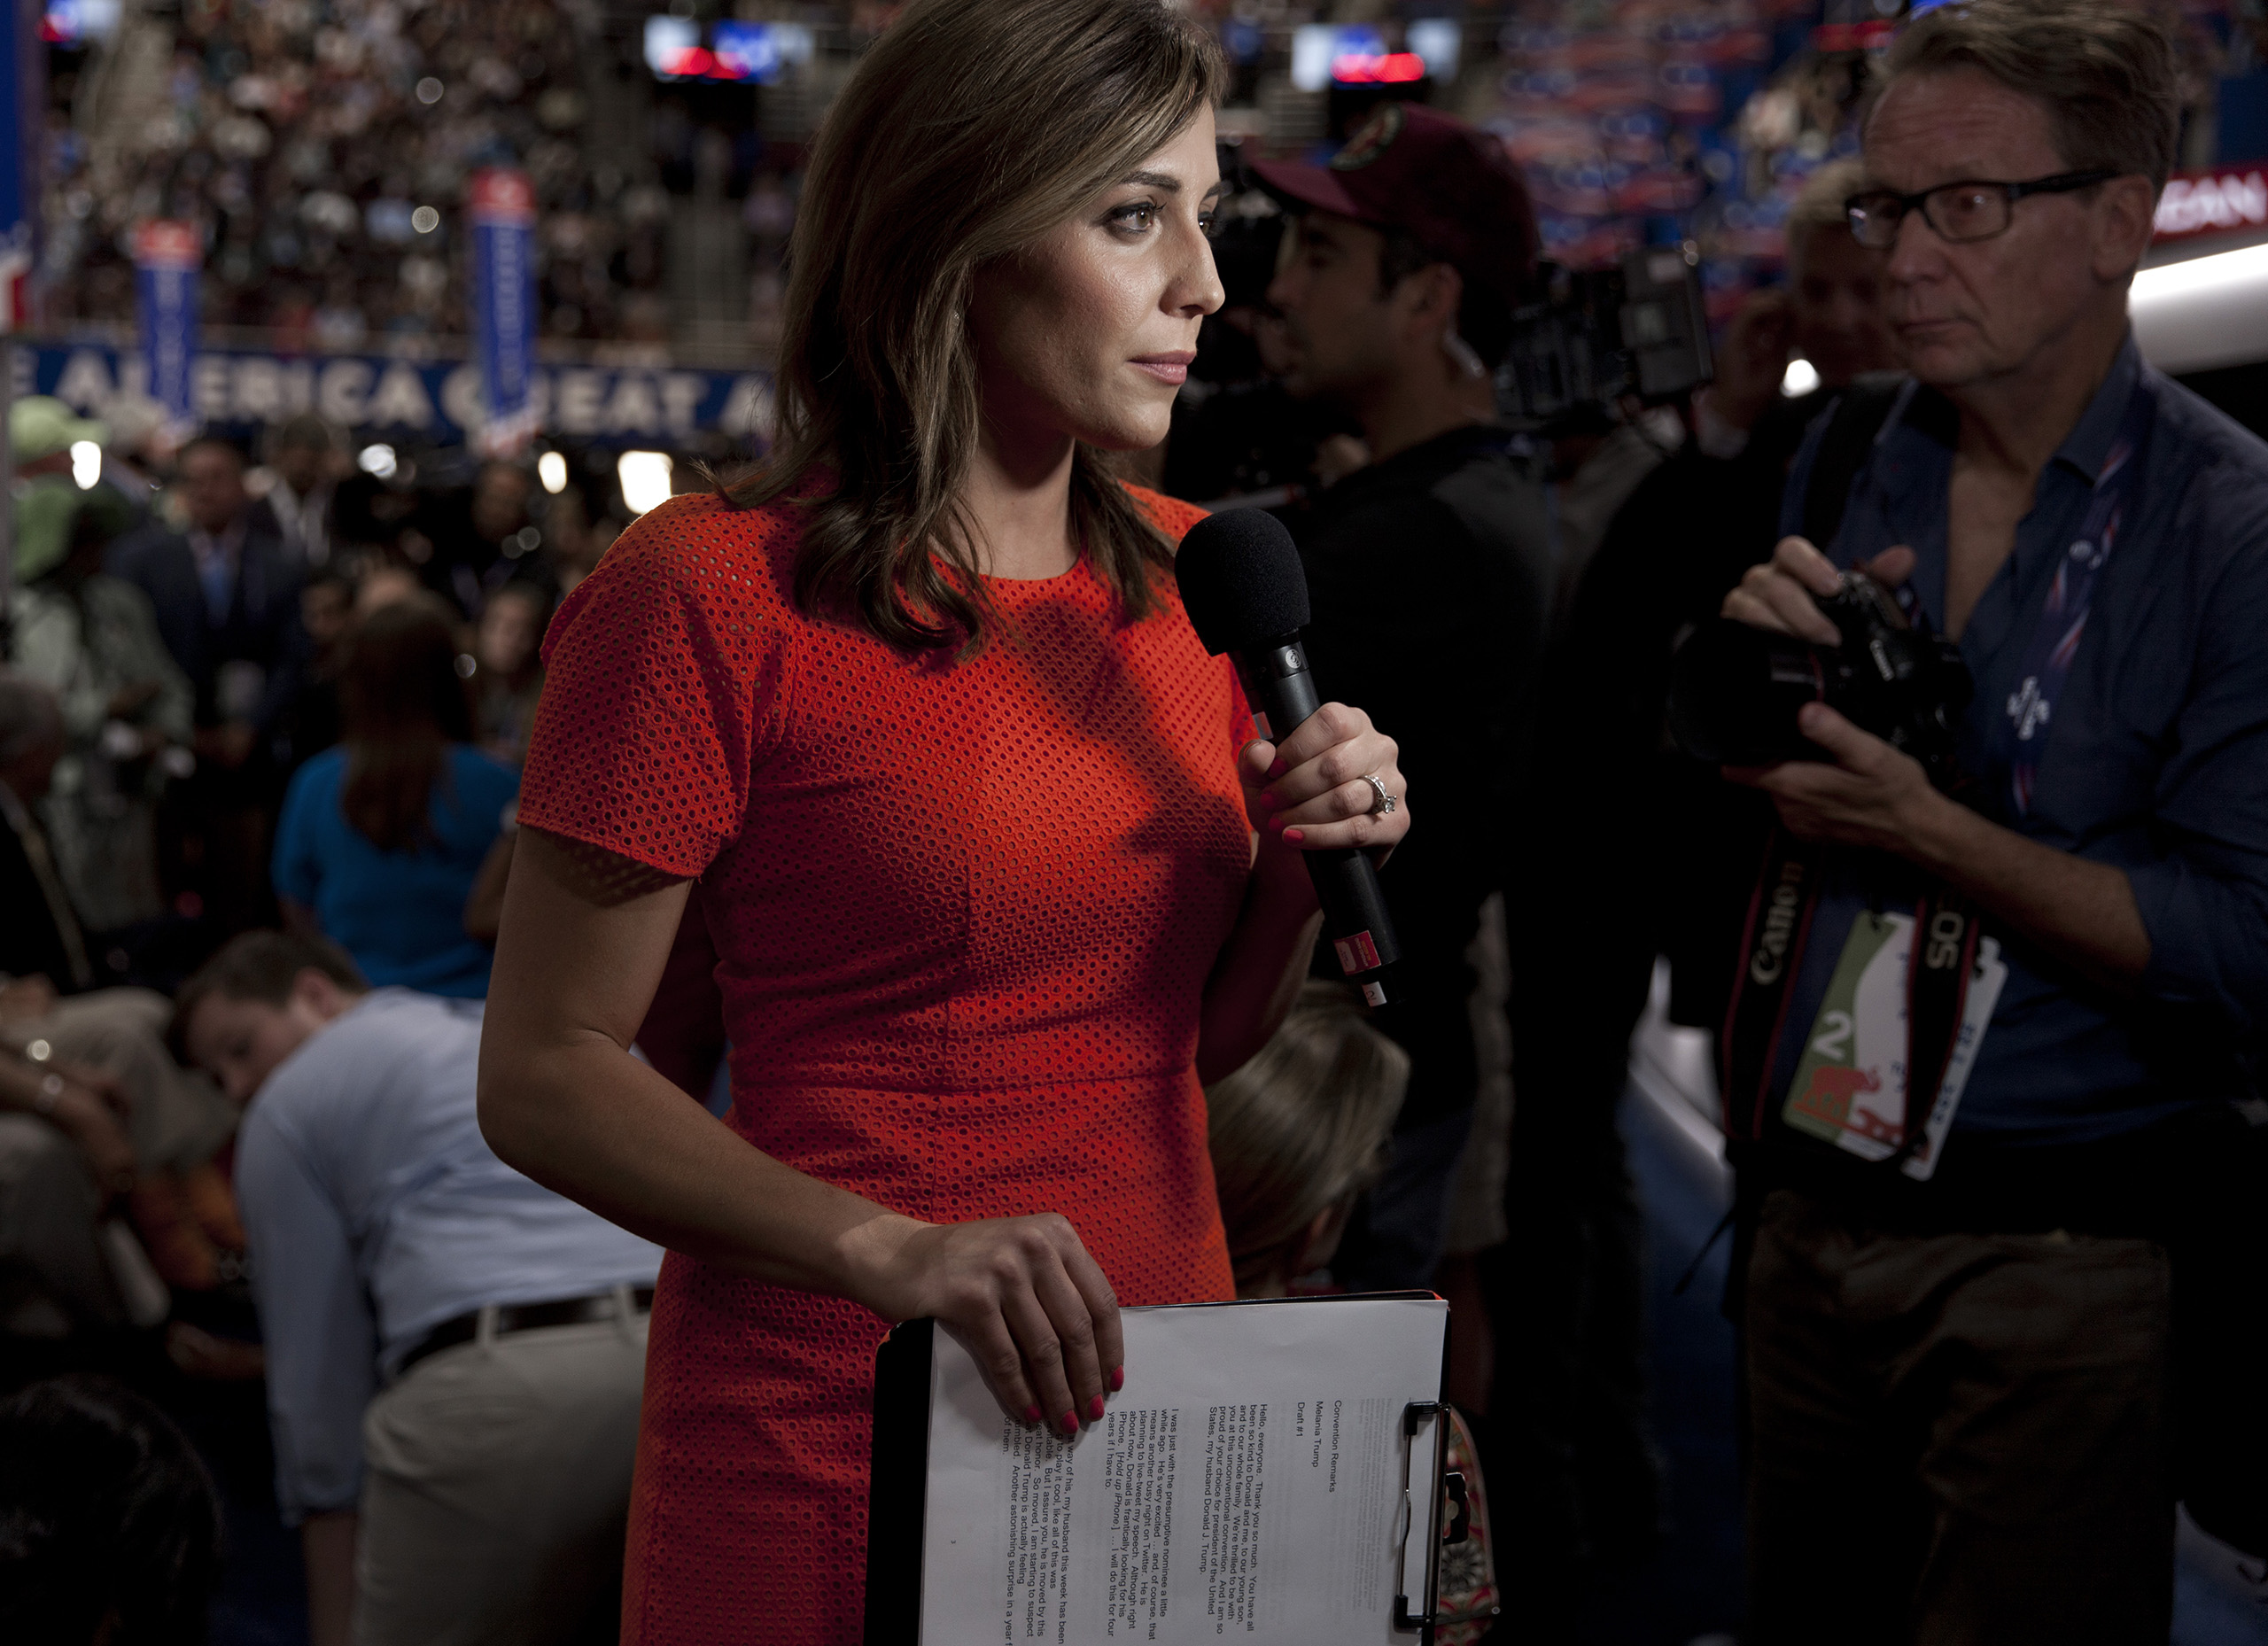 Media at the Republican National Convention on July 19, 2016 at the Quicken Loans Arena in Cleveland.